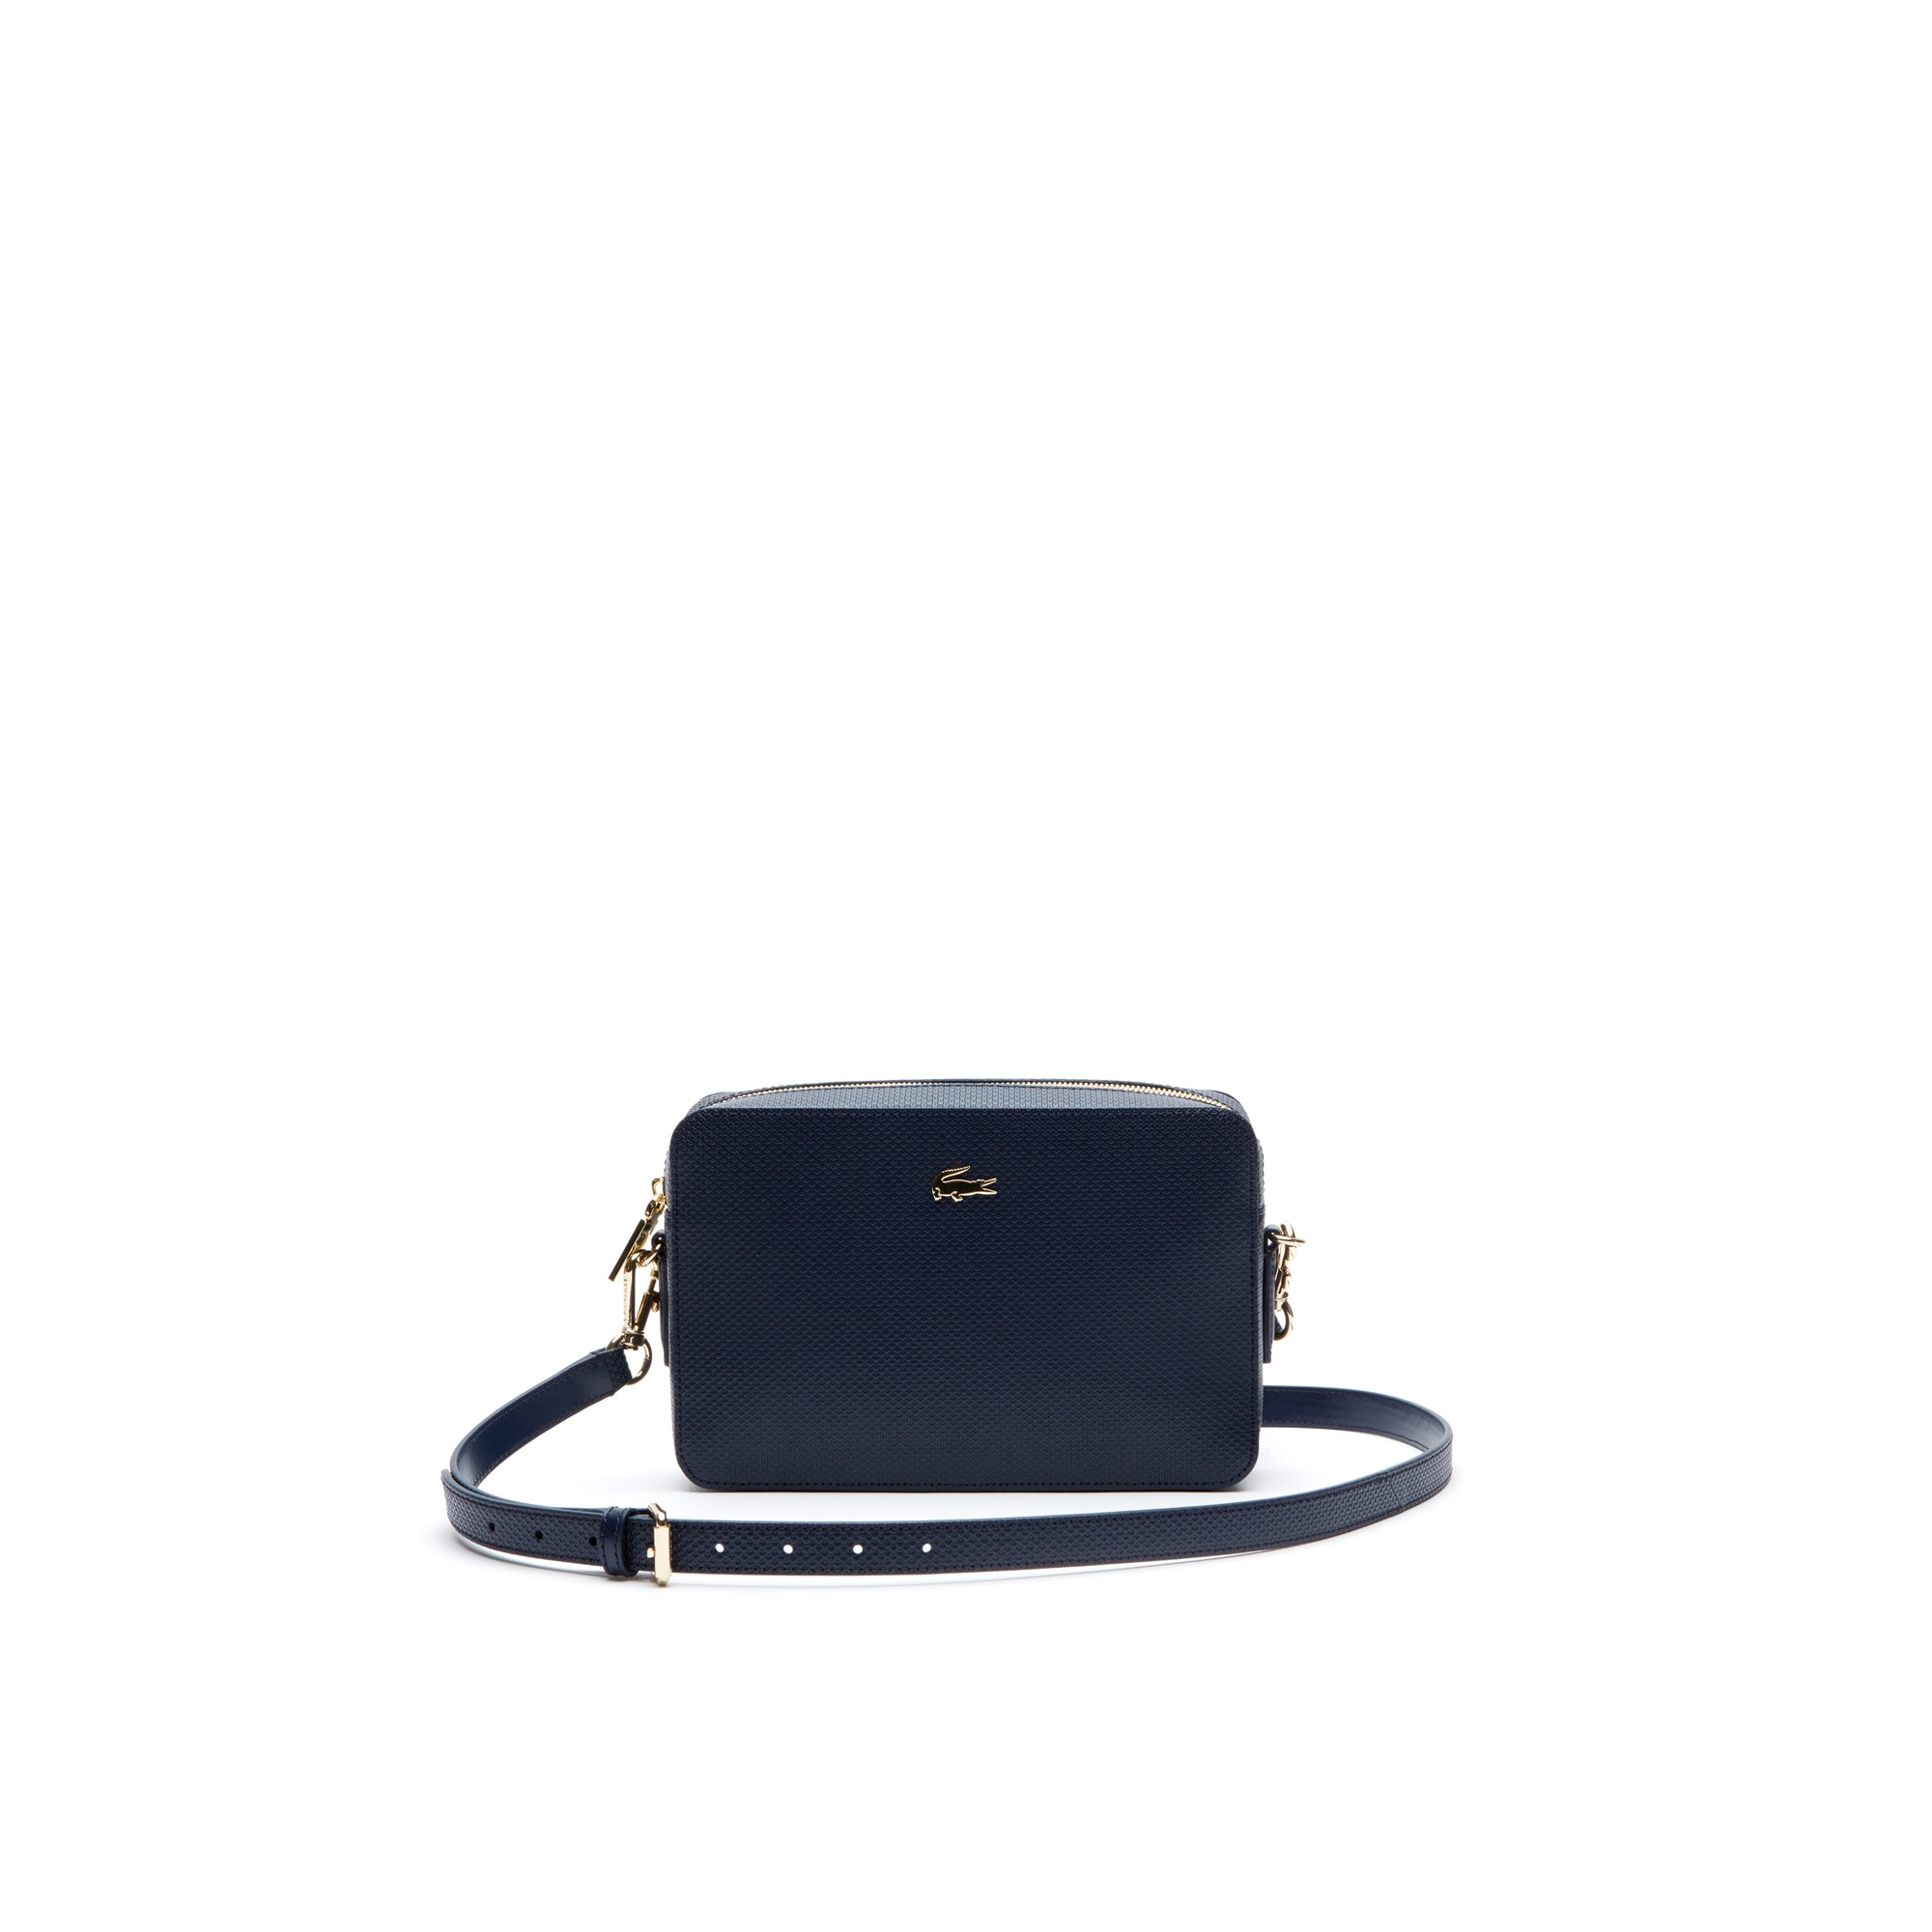 Women's Chantaco Piqué Leather Square Shoulder Bag